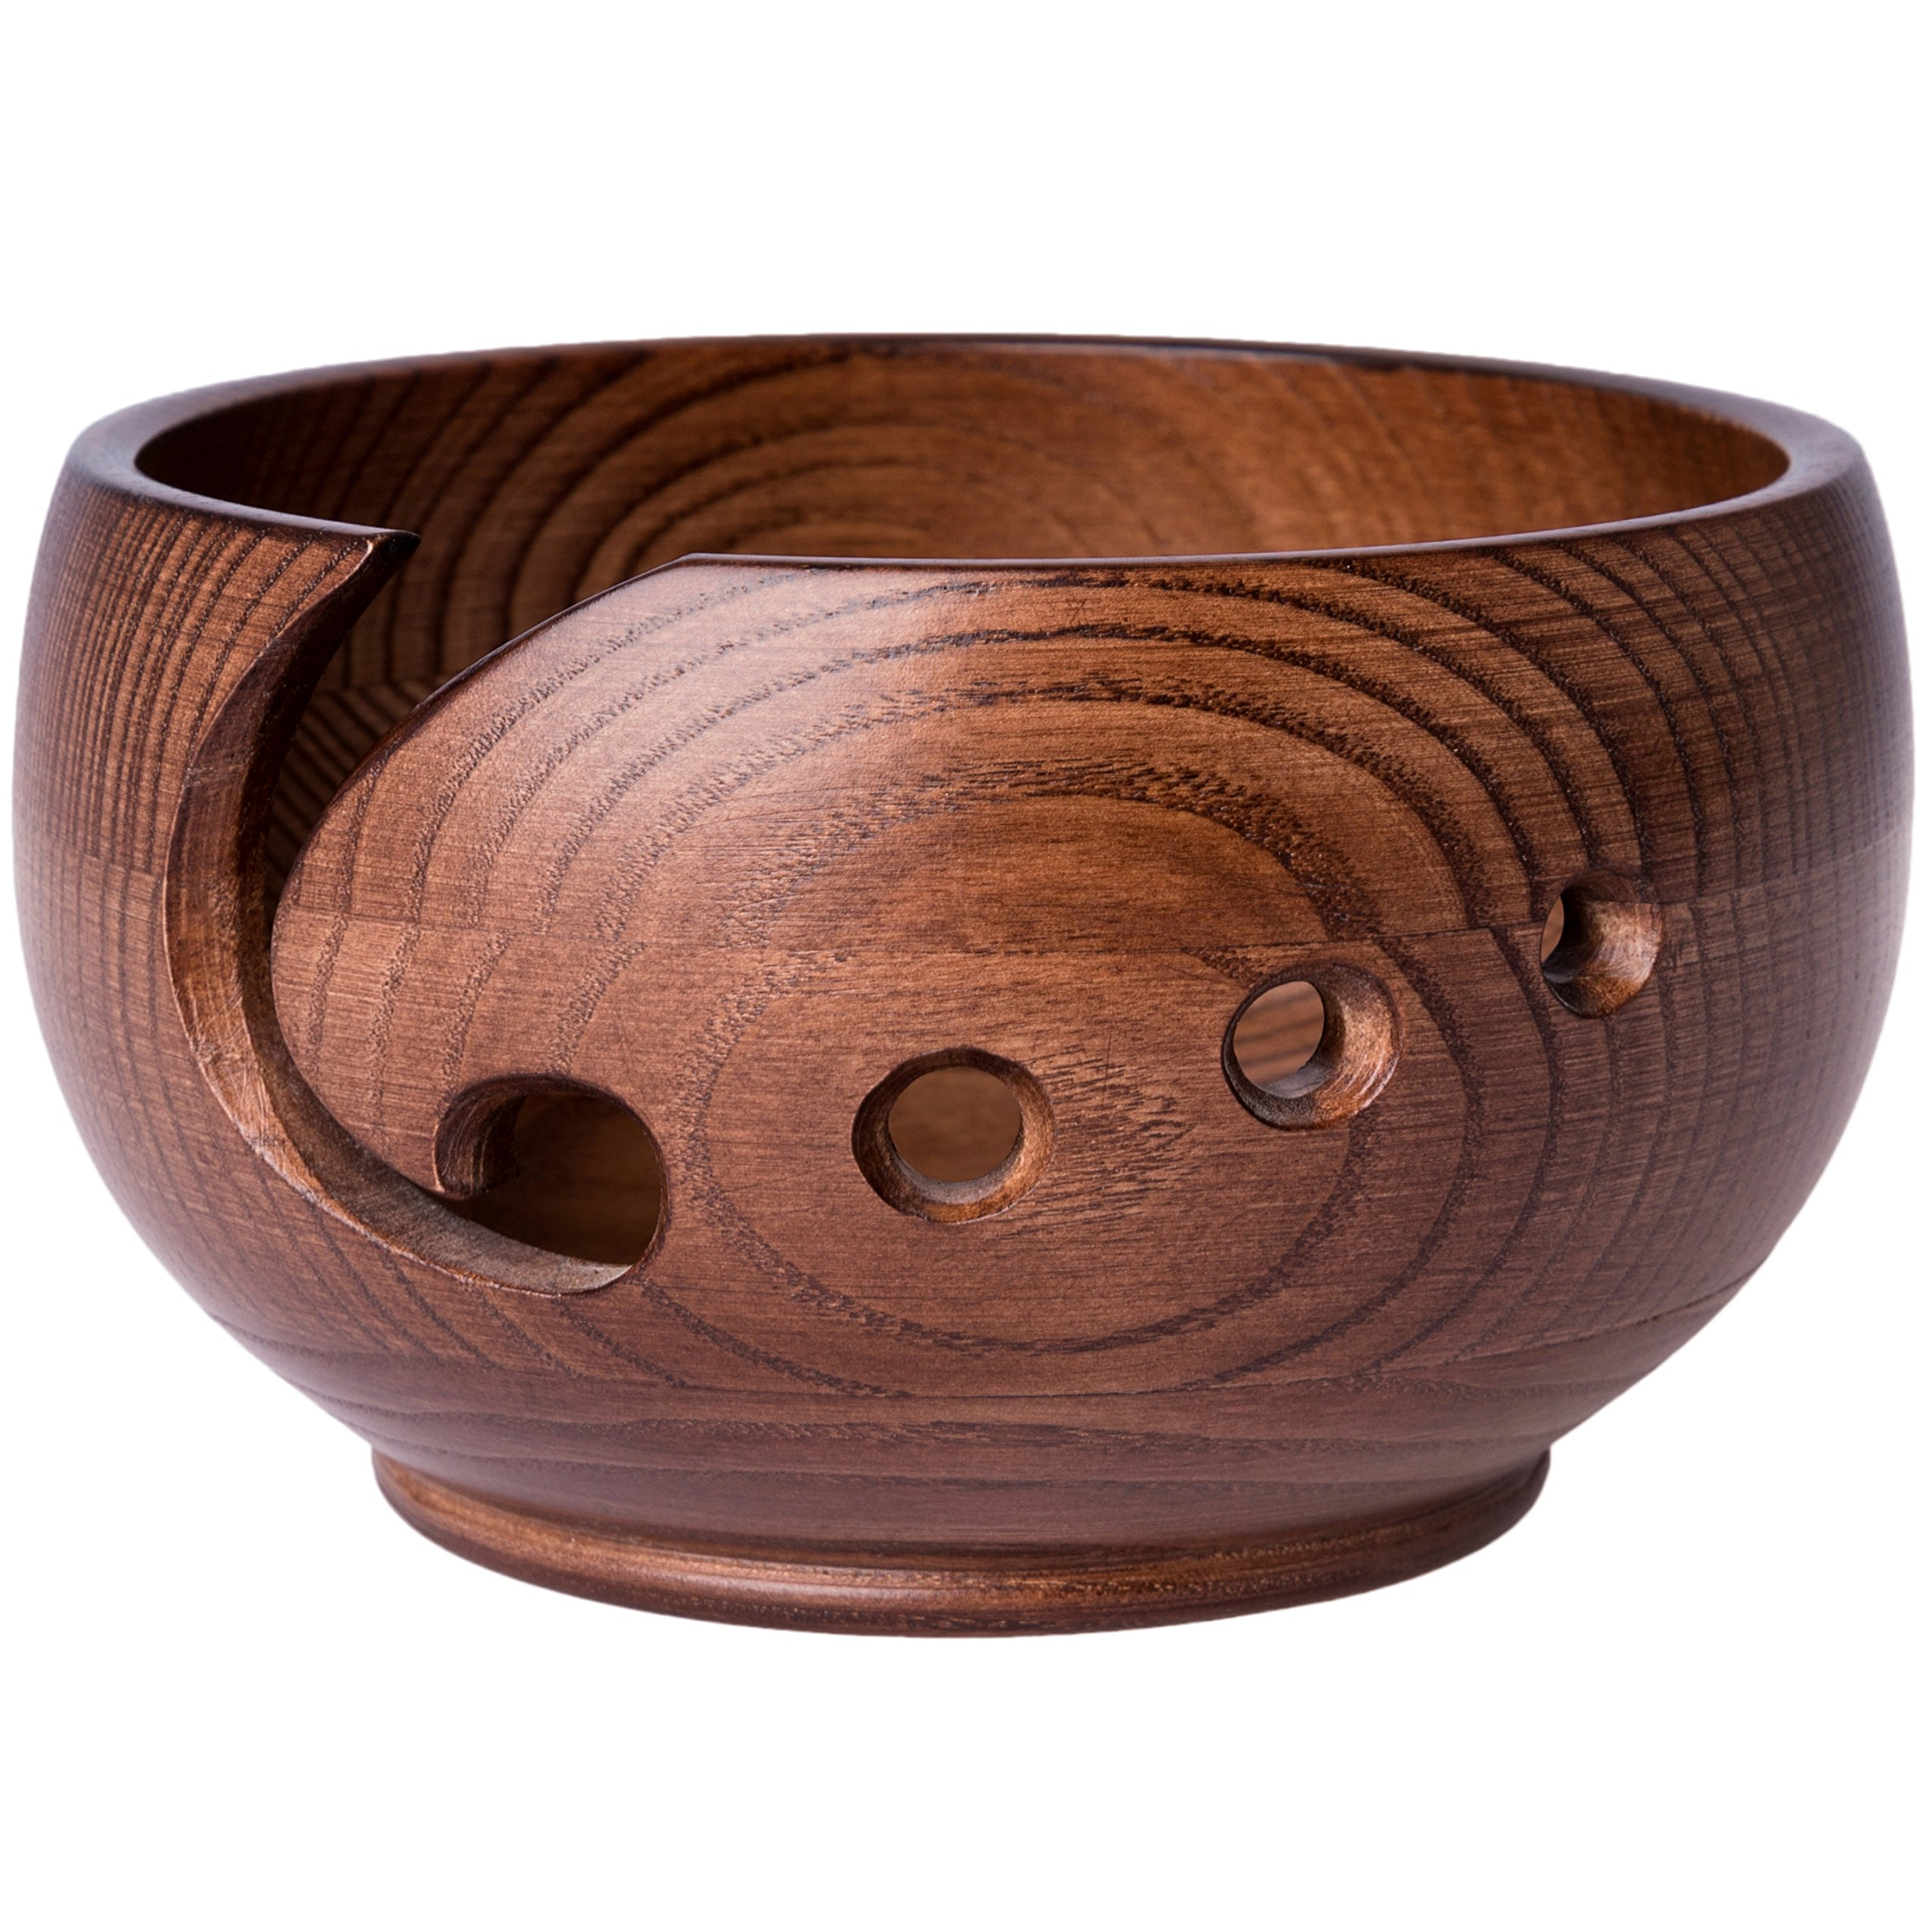 Yarn Bowl for Crochet by Laborwood | Large Size Wooden Knitting Bowl 7''x4'' inch | Handmade Heavy Cat Yarn Bowl Wood | Must Have Wooden Knitting Bowls | Set of 3 Gifts Bonus | Best Gift Ever (Chestnut)